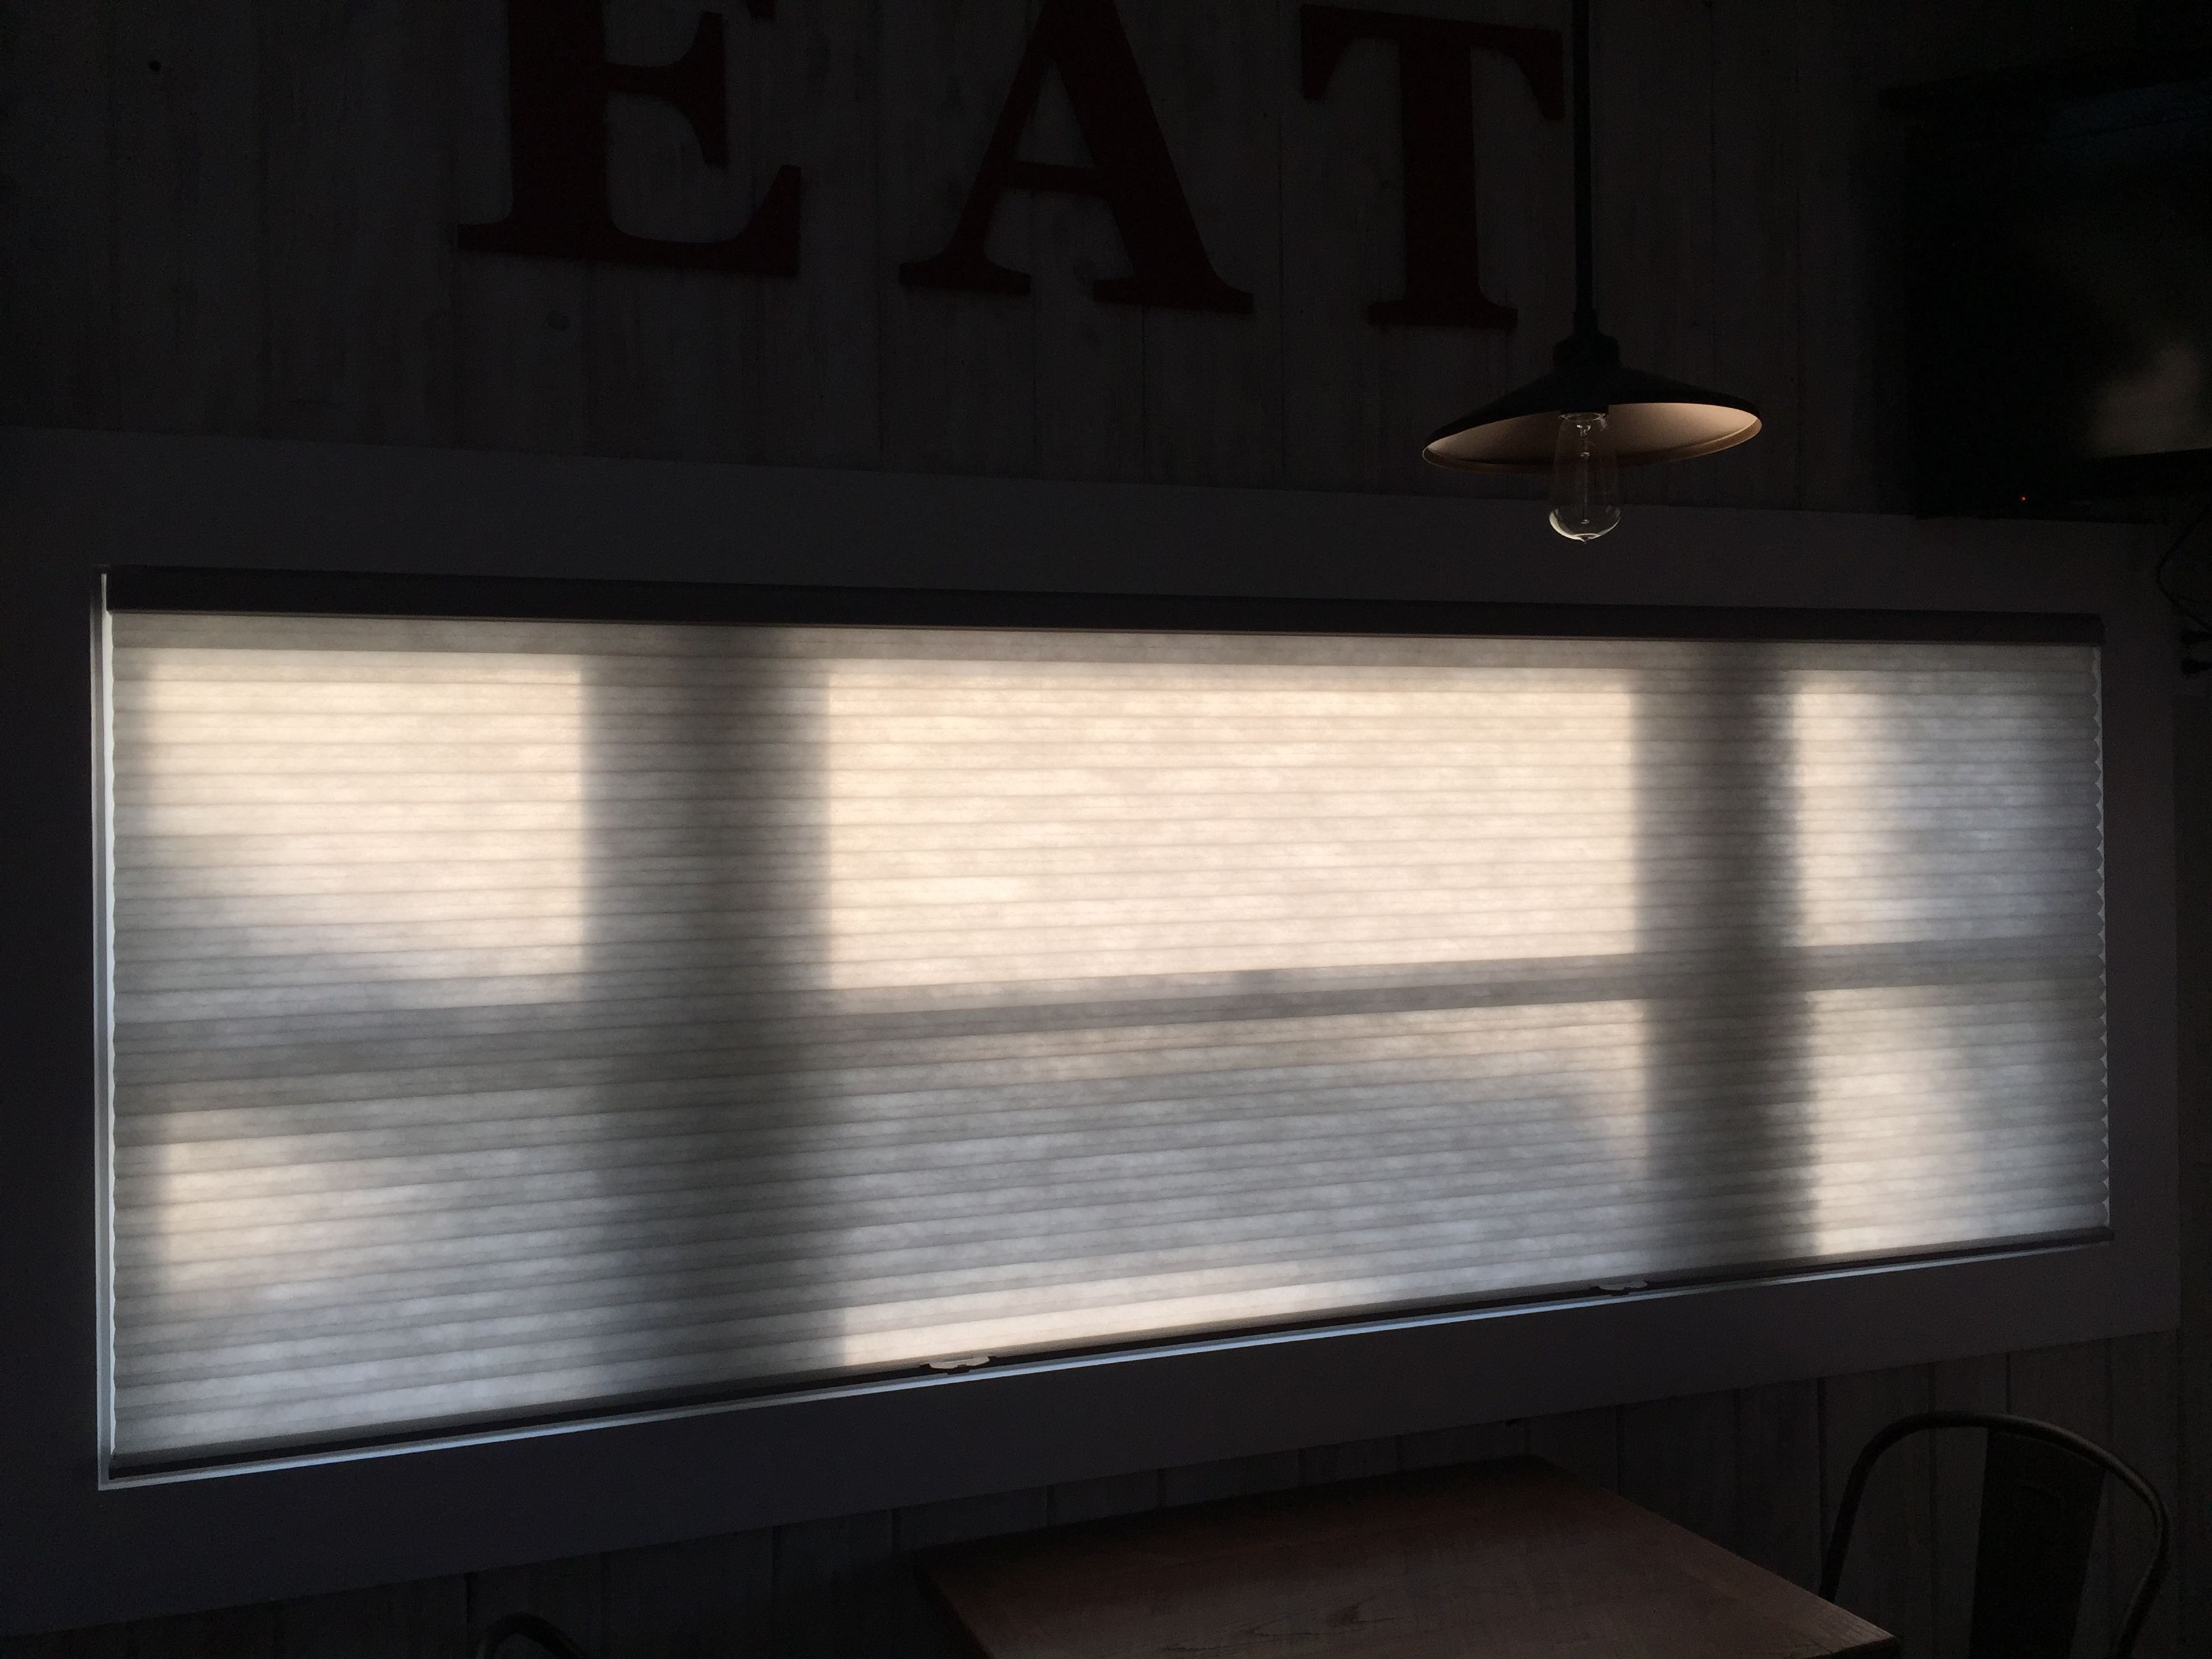 Hunter Douglas Applause® honeycomb shades are energy efficient helping a commercial business save o... - #applause #douglas #efficient #energy #honeycomb #hunter #shades - #bestcellularshades